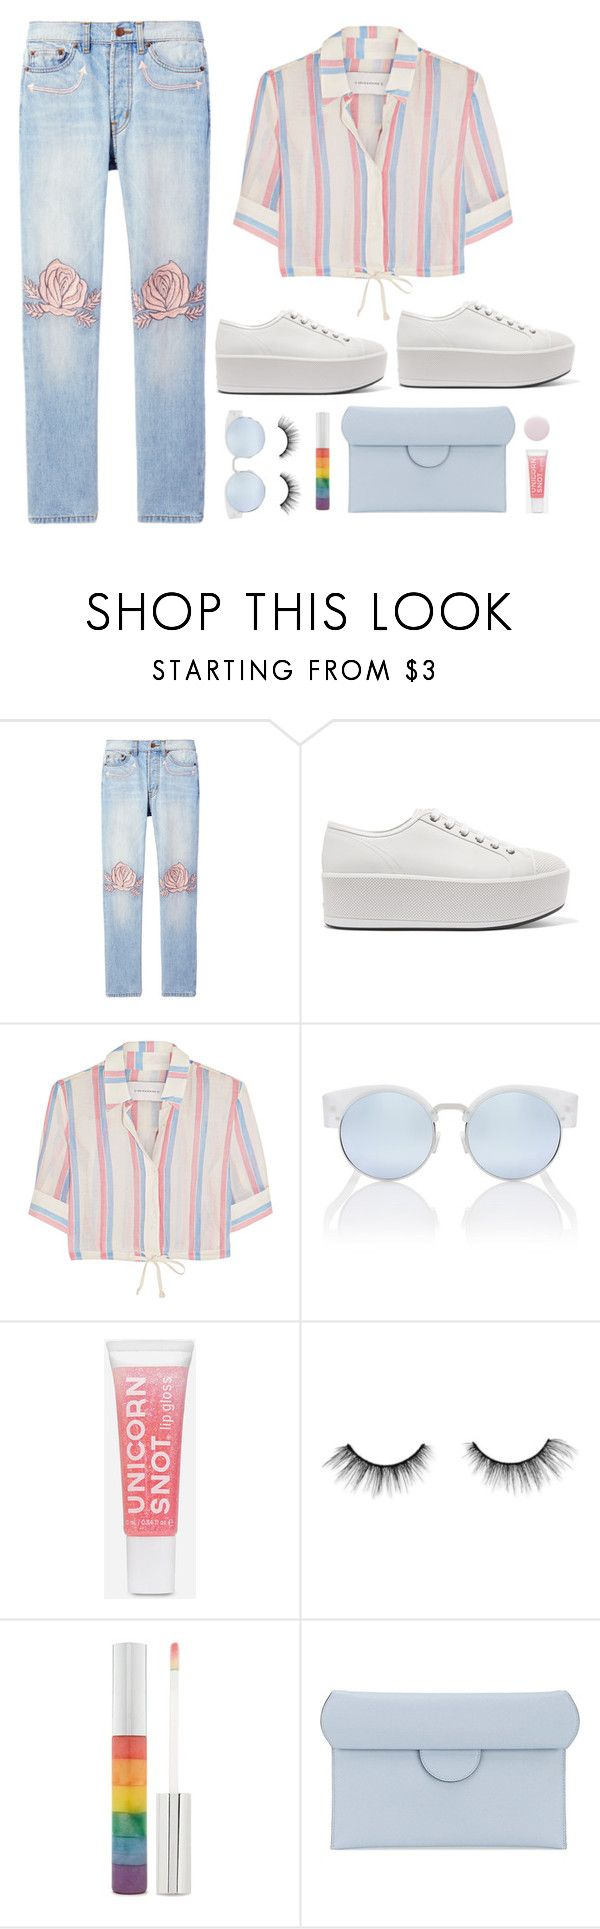 """""""Platform Sneakers"""" by shoelover220 ❤ liked on Polyvore featuring Bliss and Mischief, Prada, Solid & Striped, tarte, Forever 21, Roksanda, Nails Inc. and platformsneakers"""